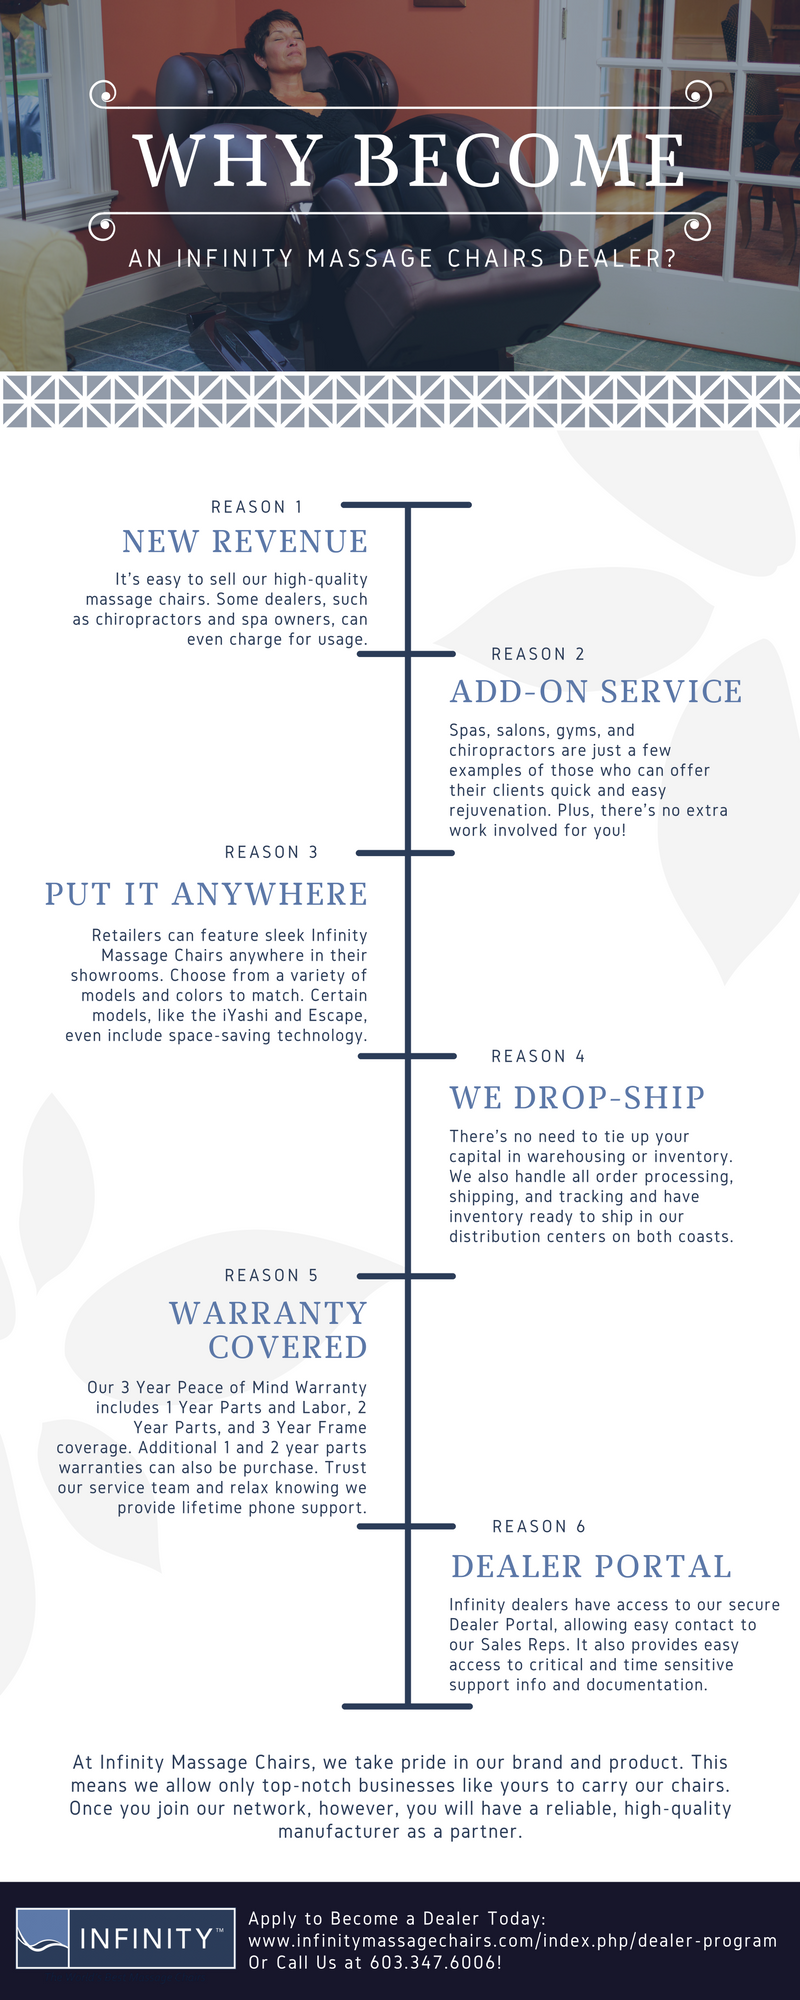 Why Become an Infinity Massage Chairs Dealer? [Infographic]